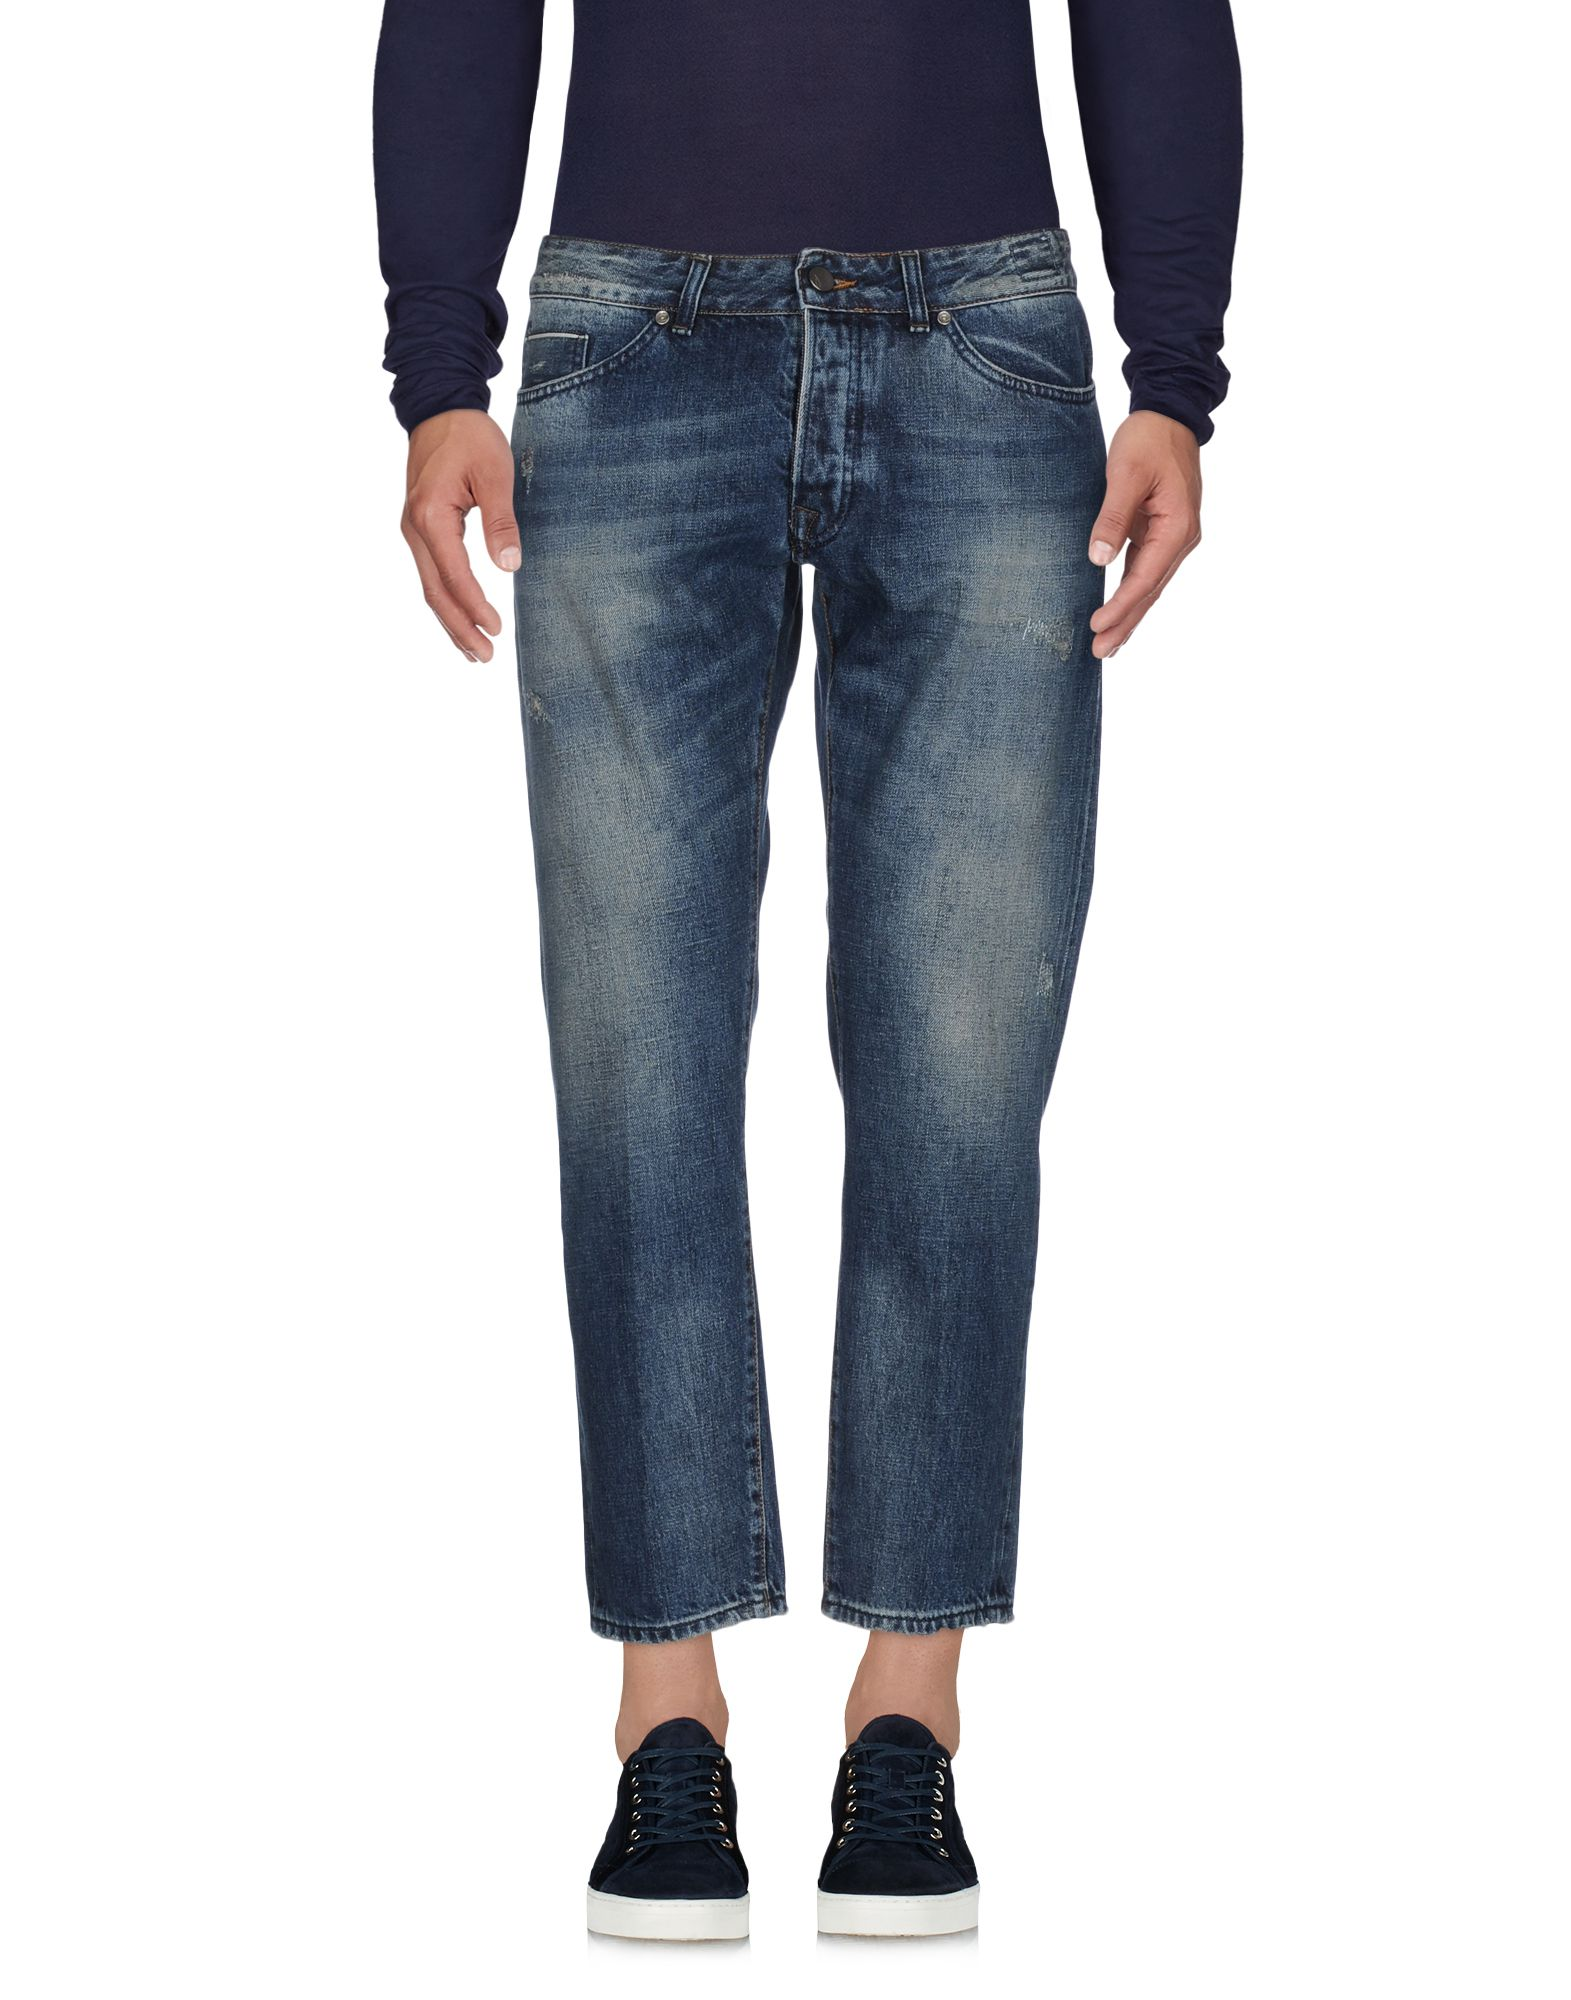 Pantaloni Jeans Michael Coal Donna - Acquista online su